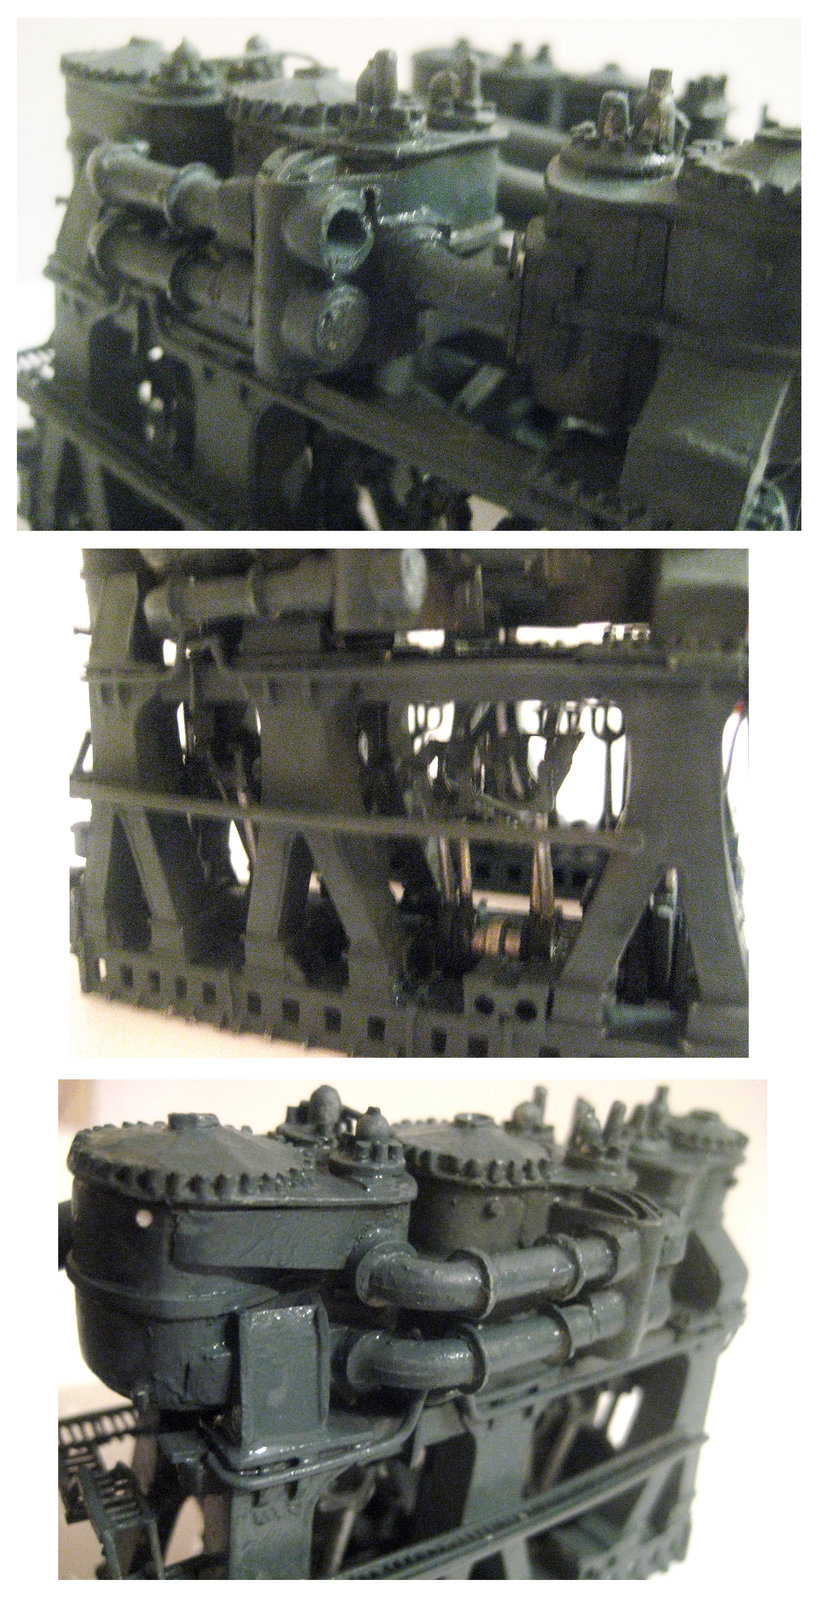 Detail views of the starboard engine (02)